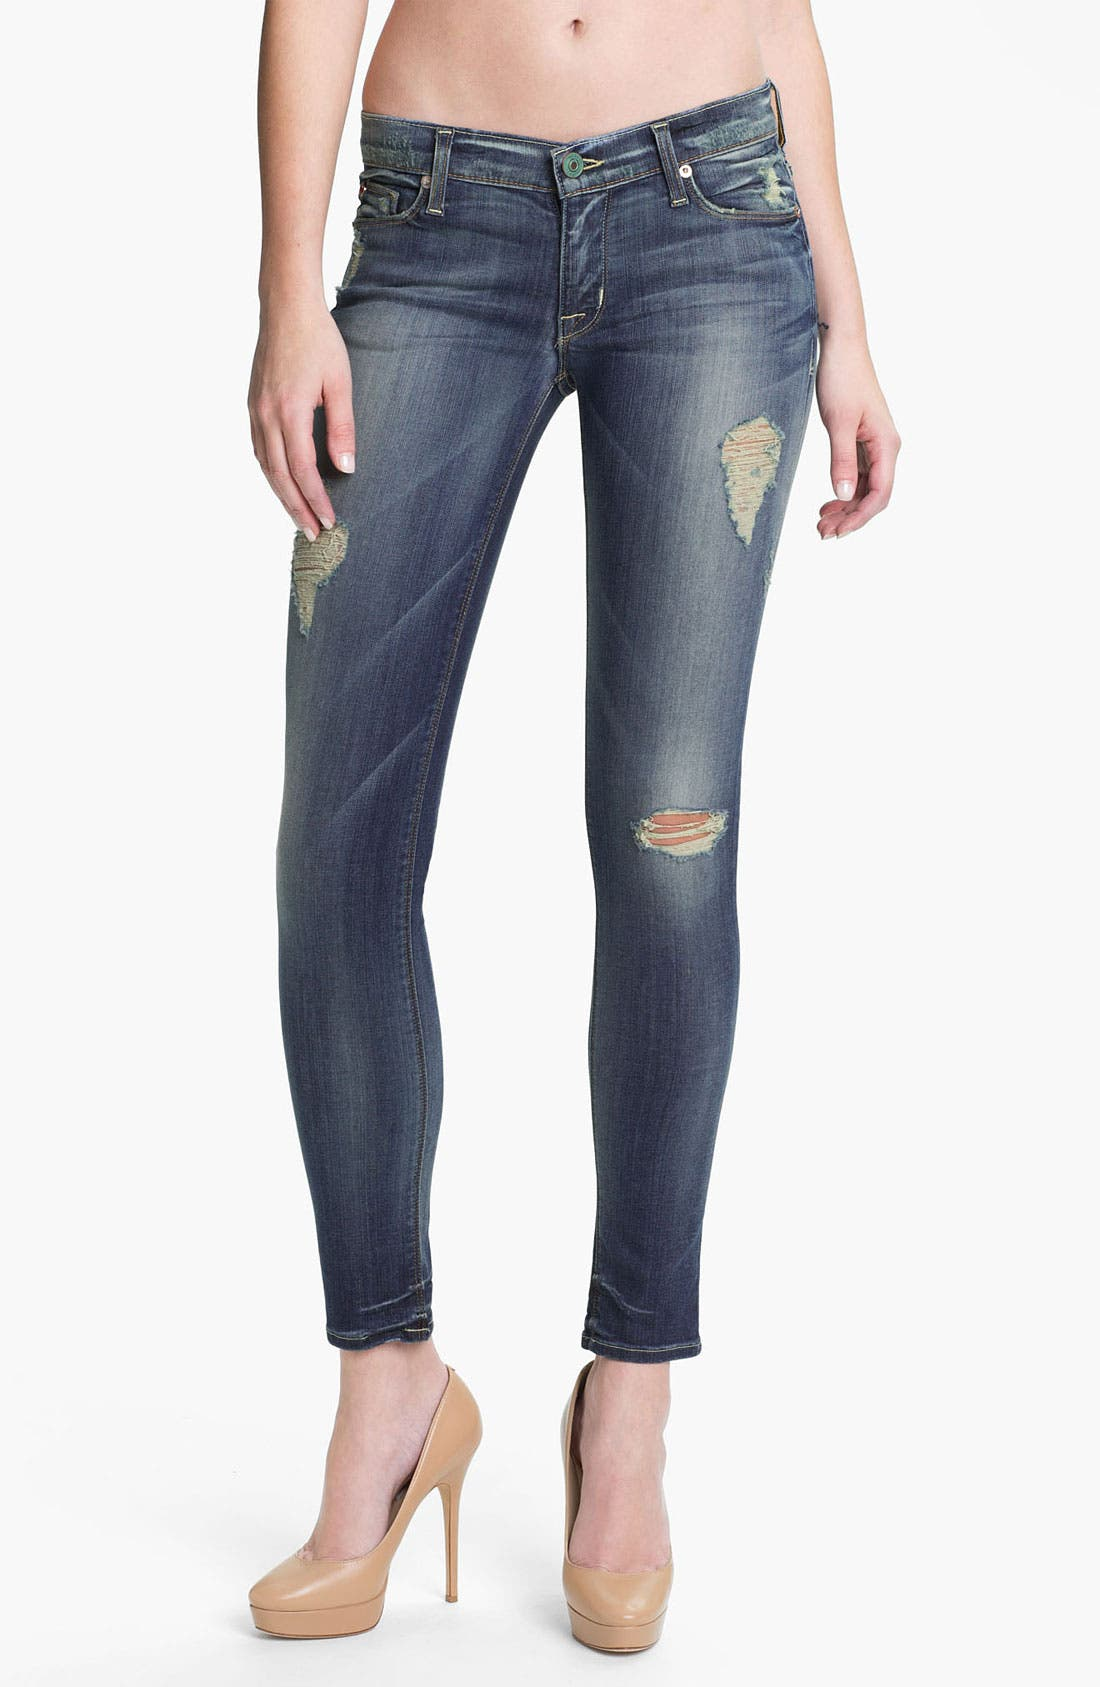 Alternate Image 1 Selected - Hudson Jeans 'Krista' Super Skinny Jeans (Blondie)